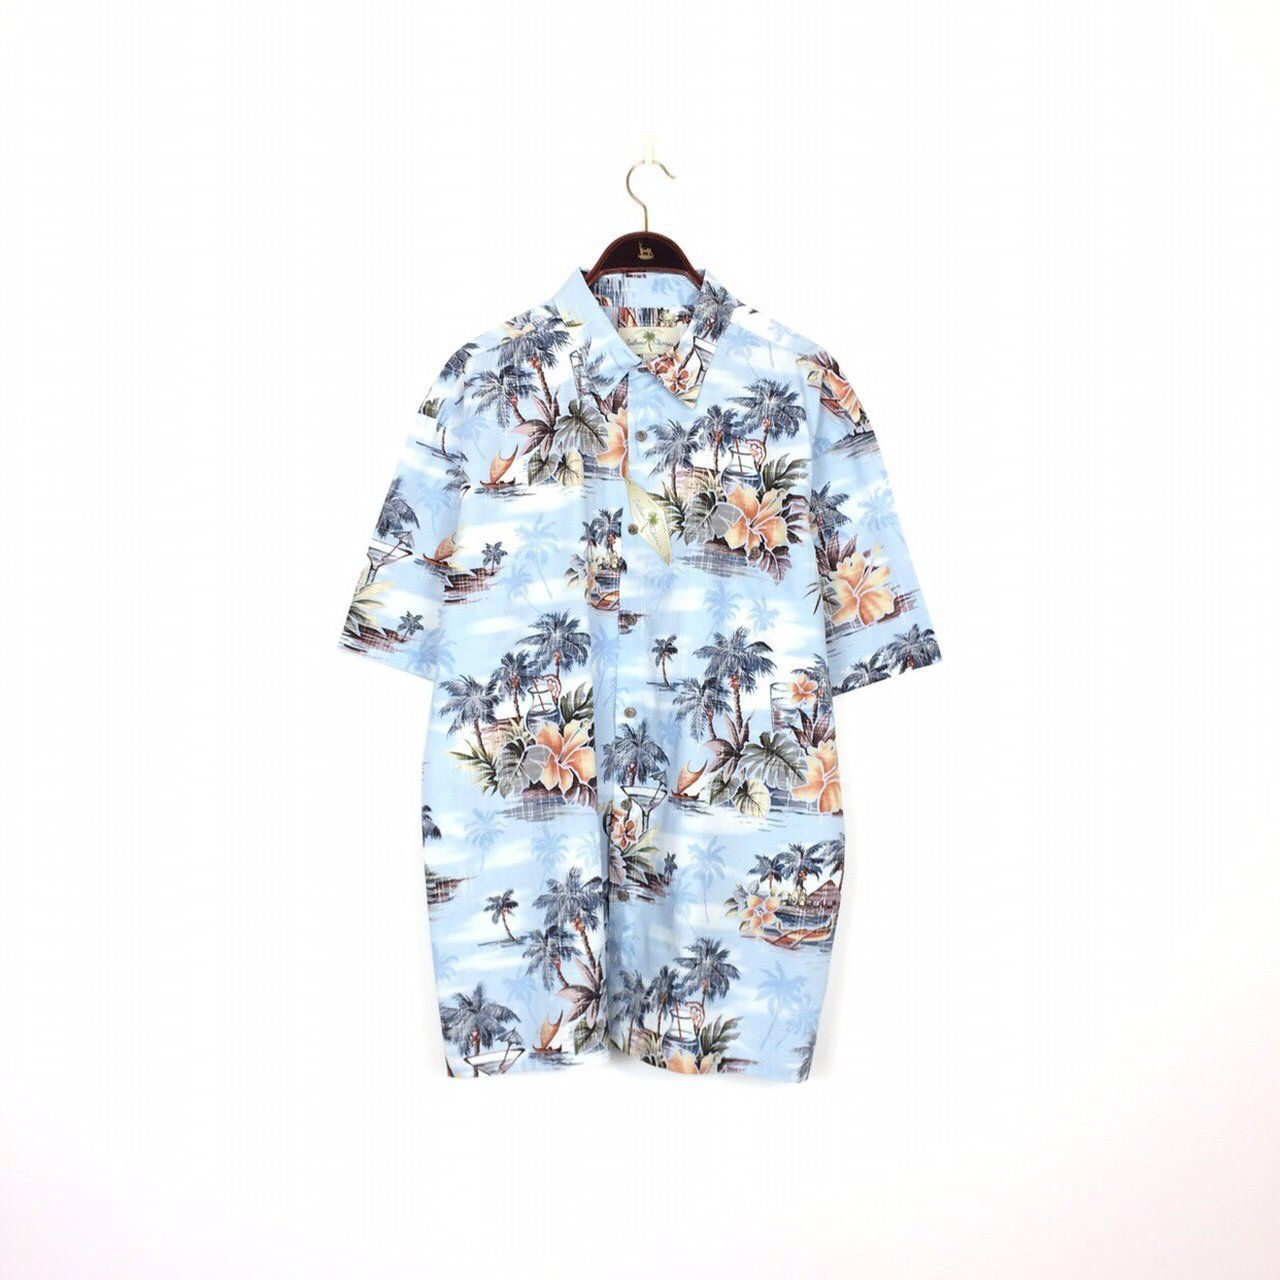 cd051c4e5e4e This is a seriously bang on 90s vintage hawaiian shirt and a - Depop